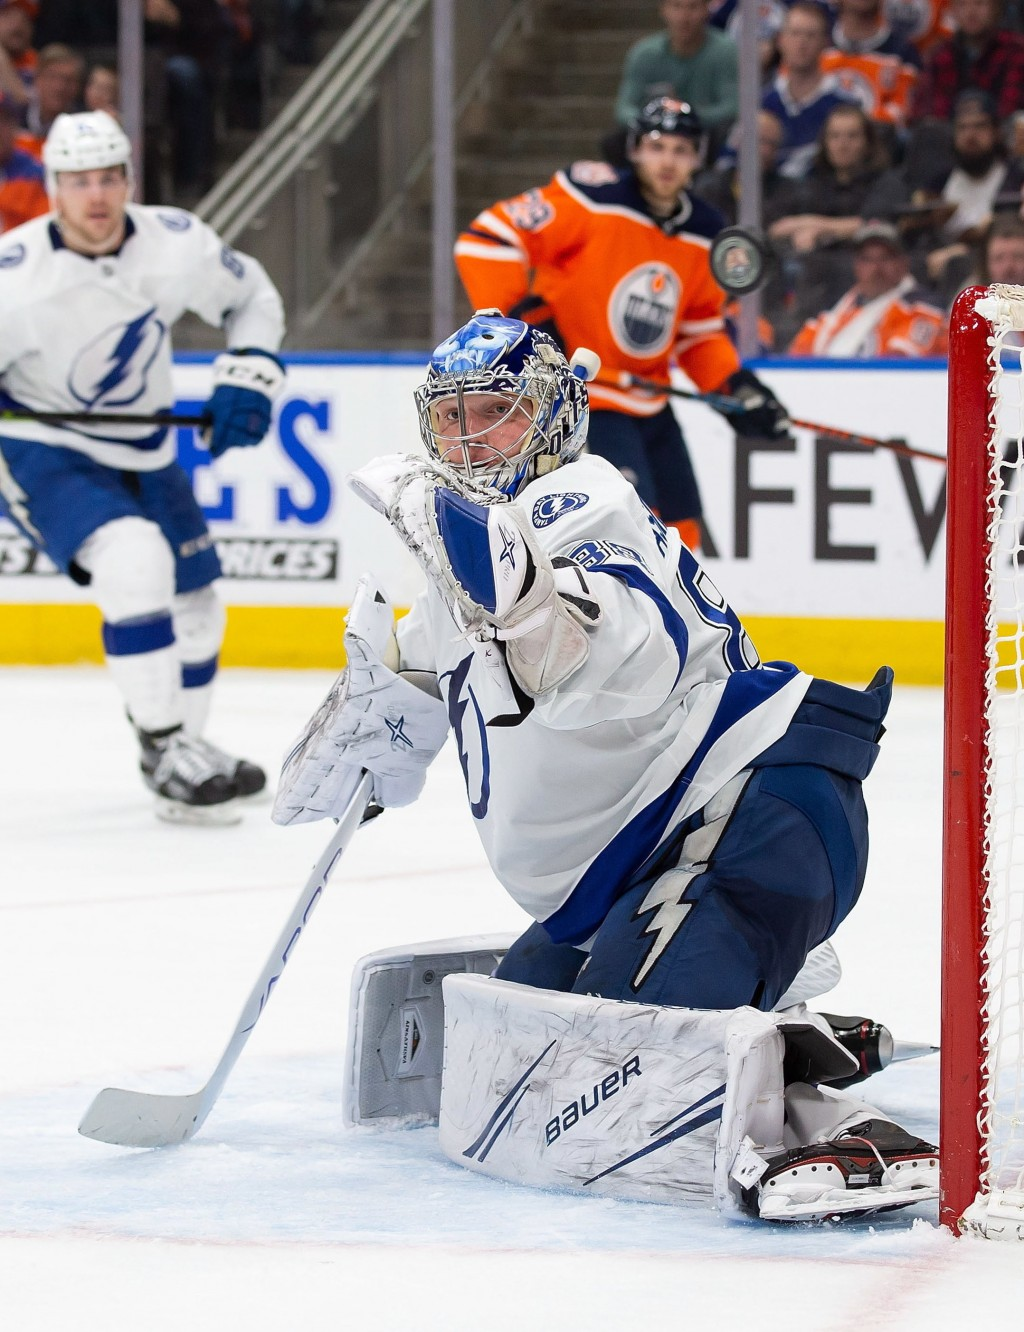 Tampa Bay Lightning goaltender Andrei Vasilevskiy (88) makes a save against the Edmonton Oilers during the second period of an NHL hockey game Saturda...